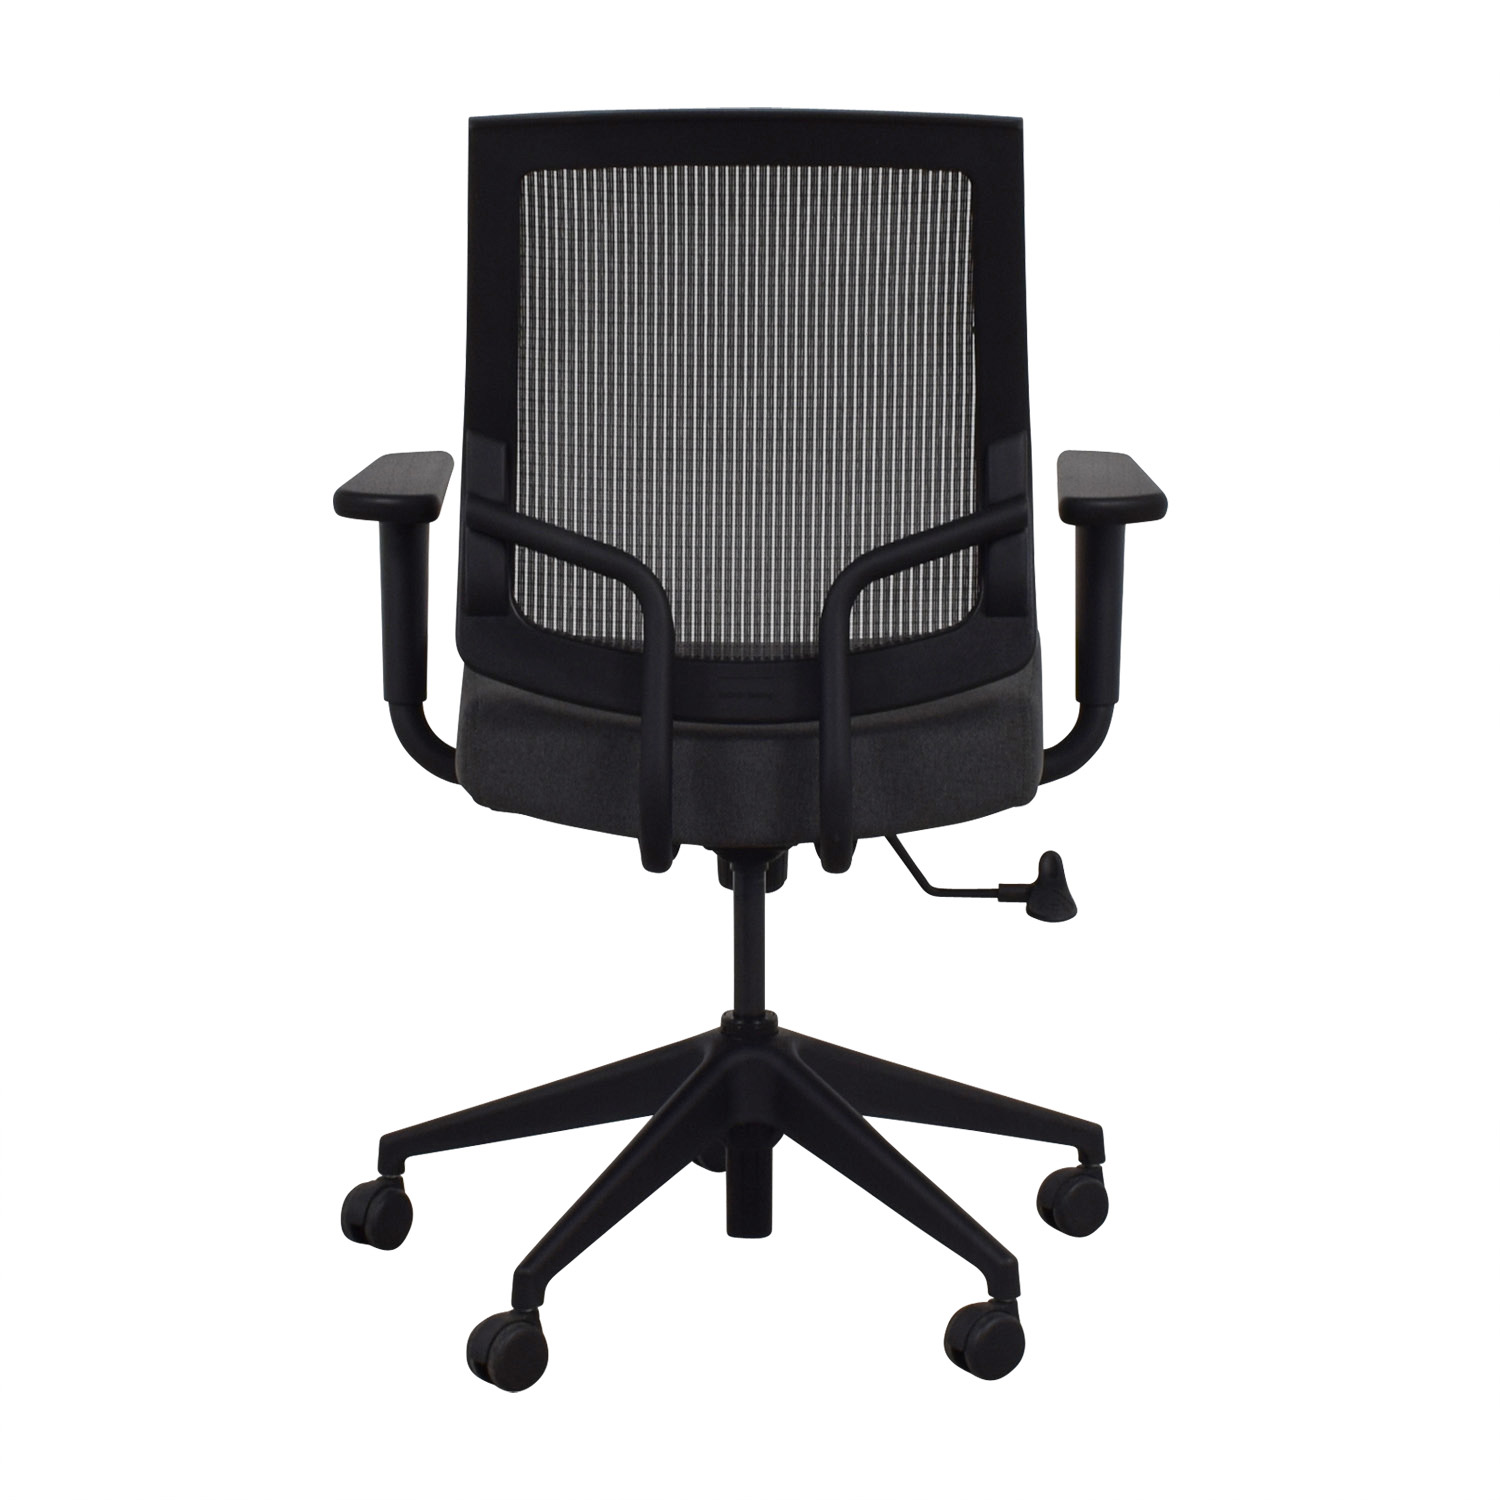 office chair price designer covers australia pty ltd chairs used for sale